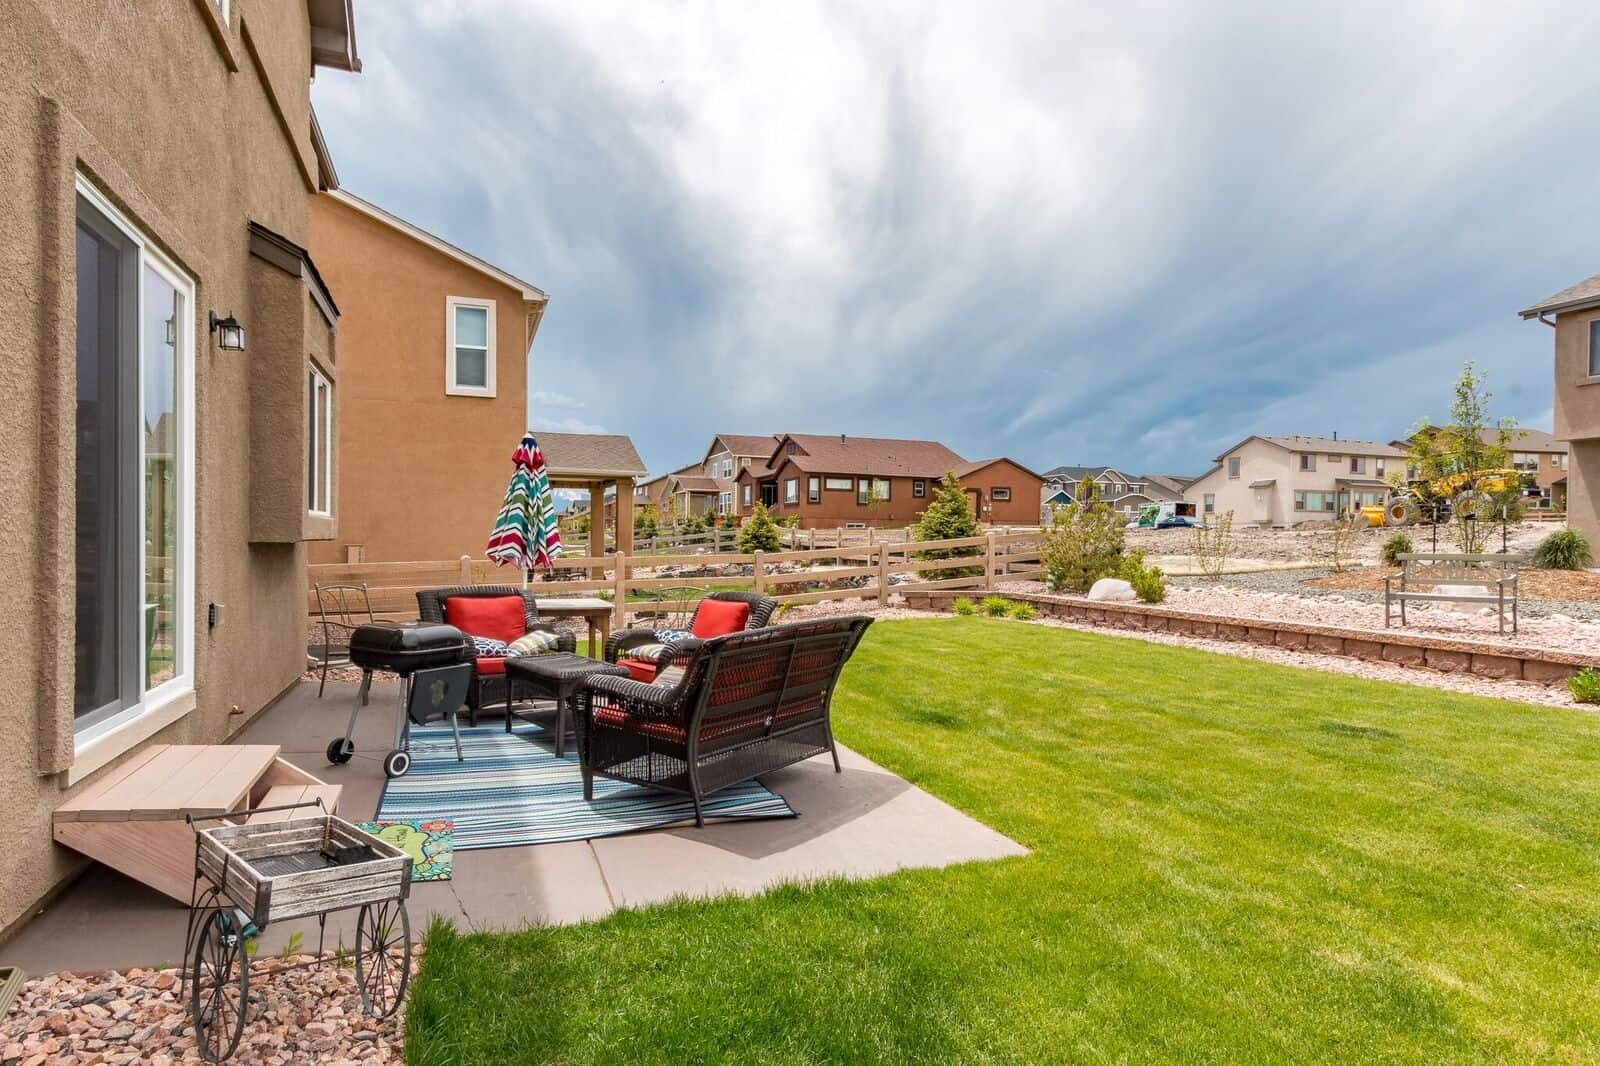 Rear Patio and Yard with Views